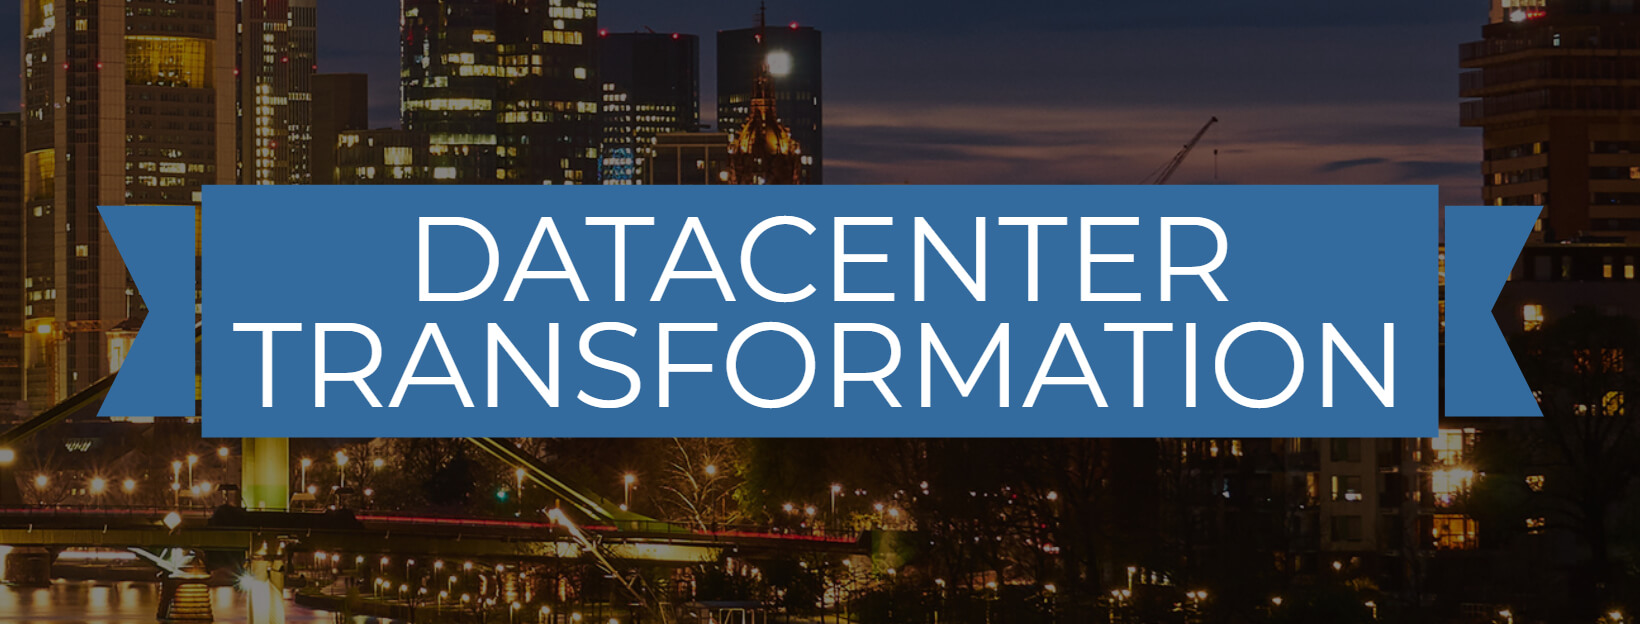 The OCP is interested to hear from you! What would you like to ask our panel of experts at Datacenter Transformation?